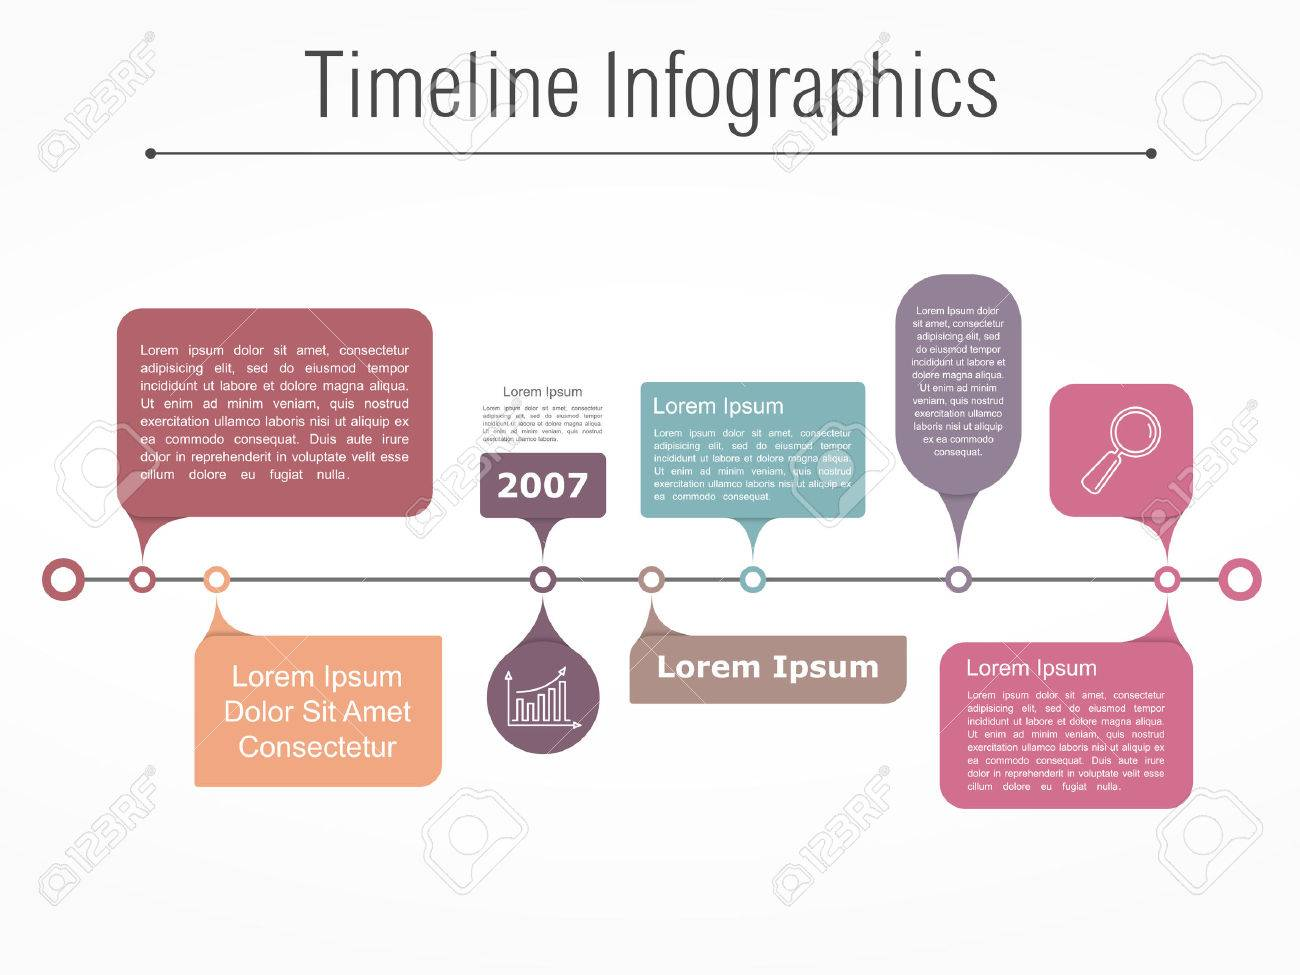 Timeline infographics template with different elements for your information, text and icons - 47703752